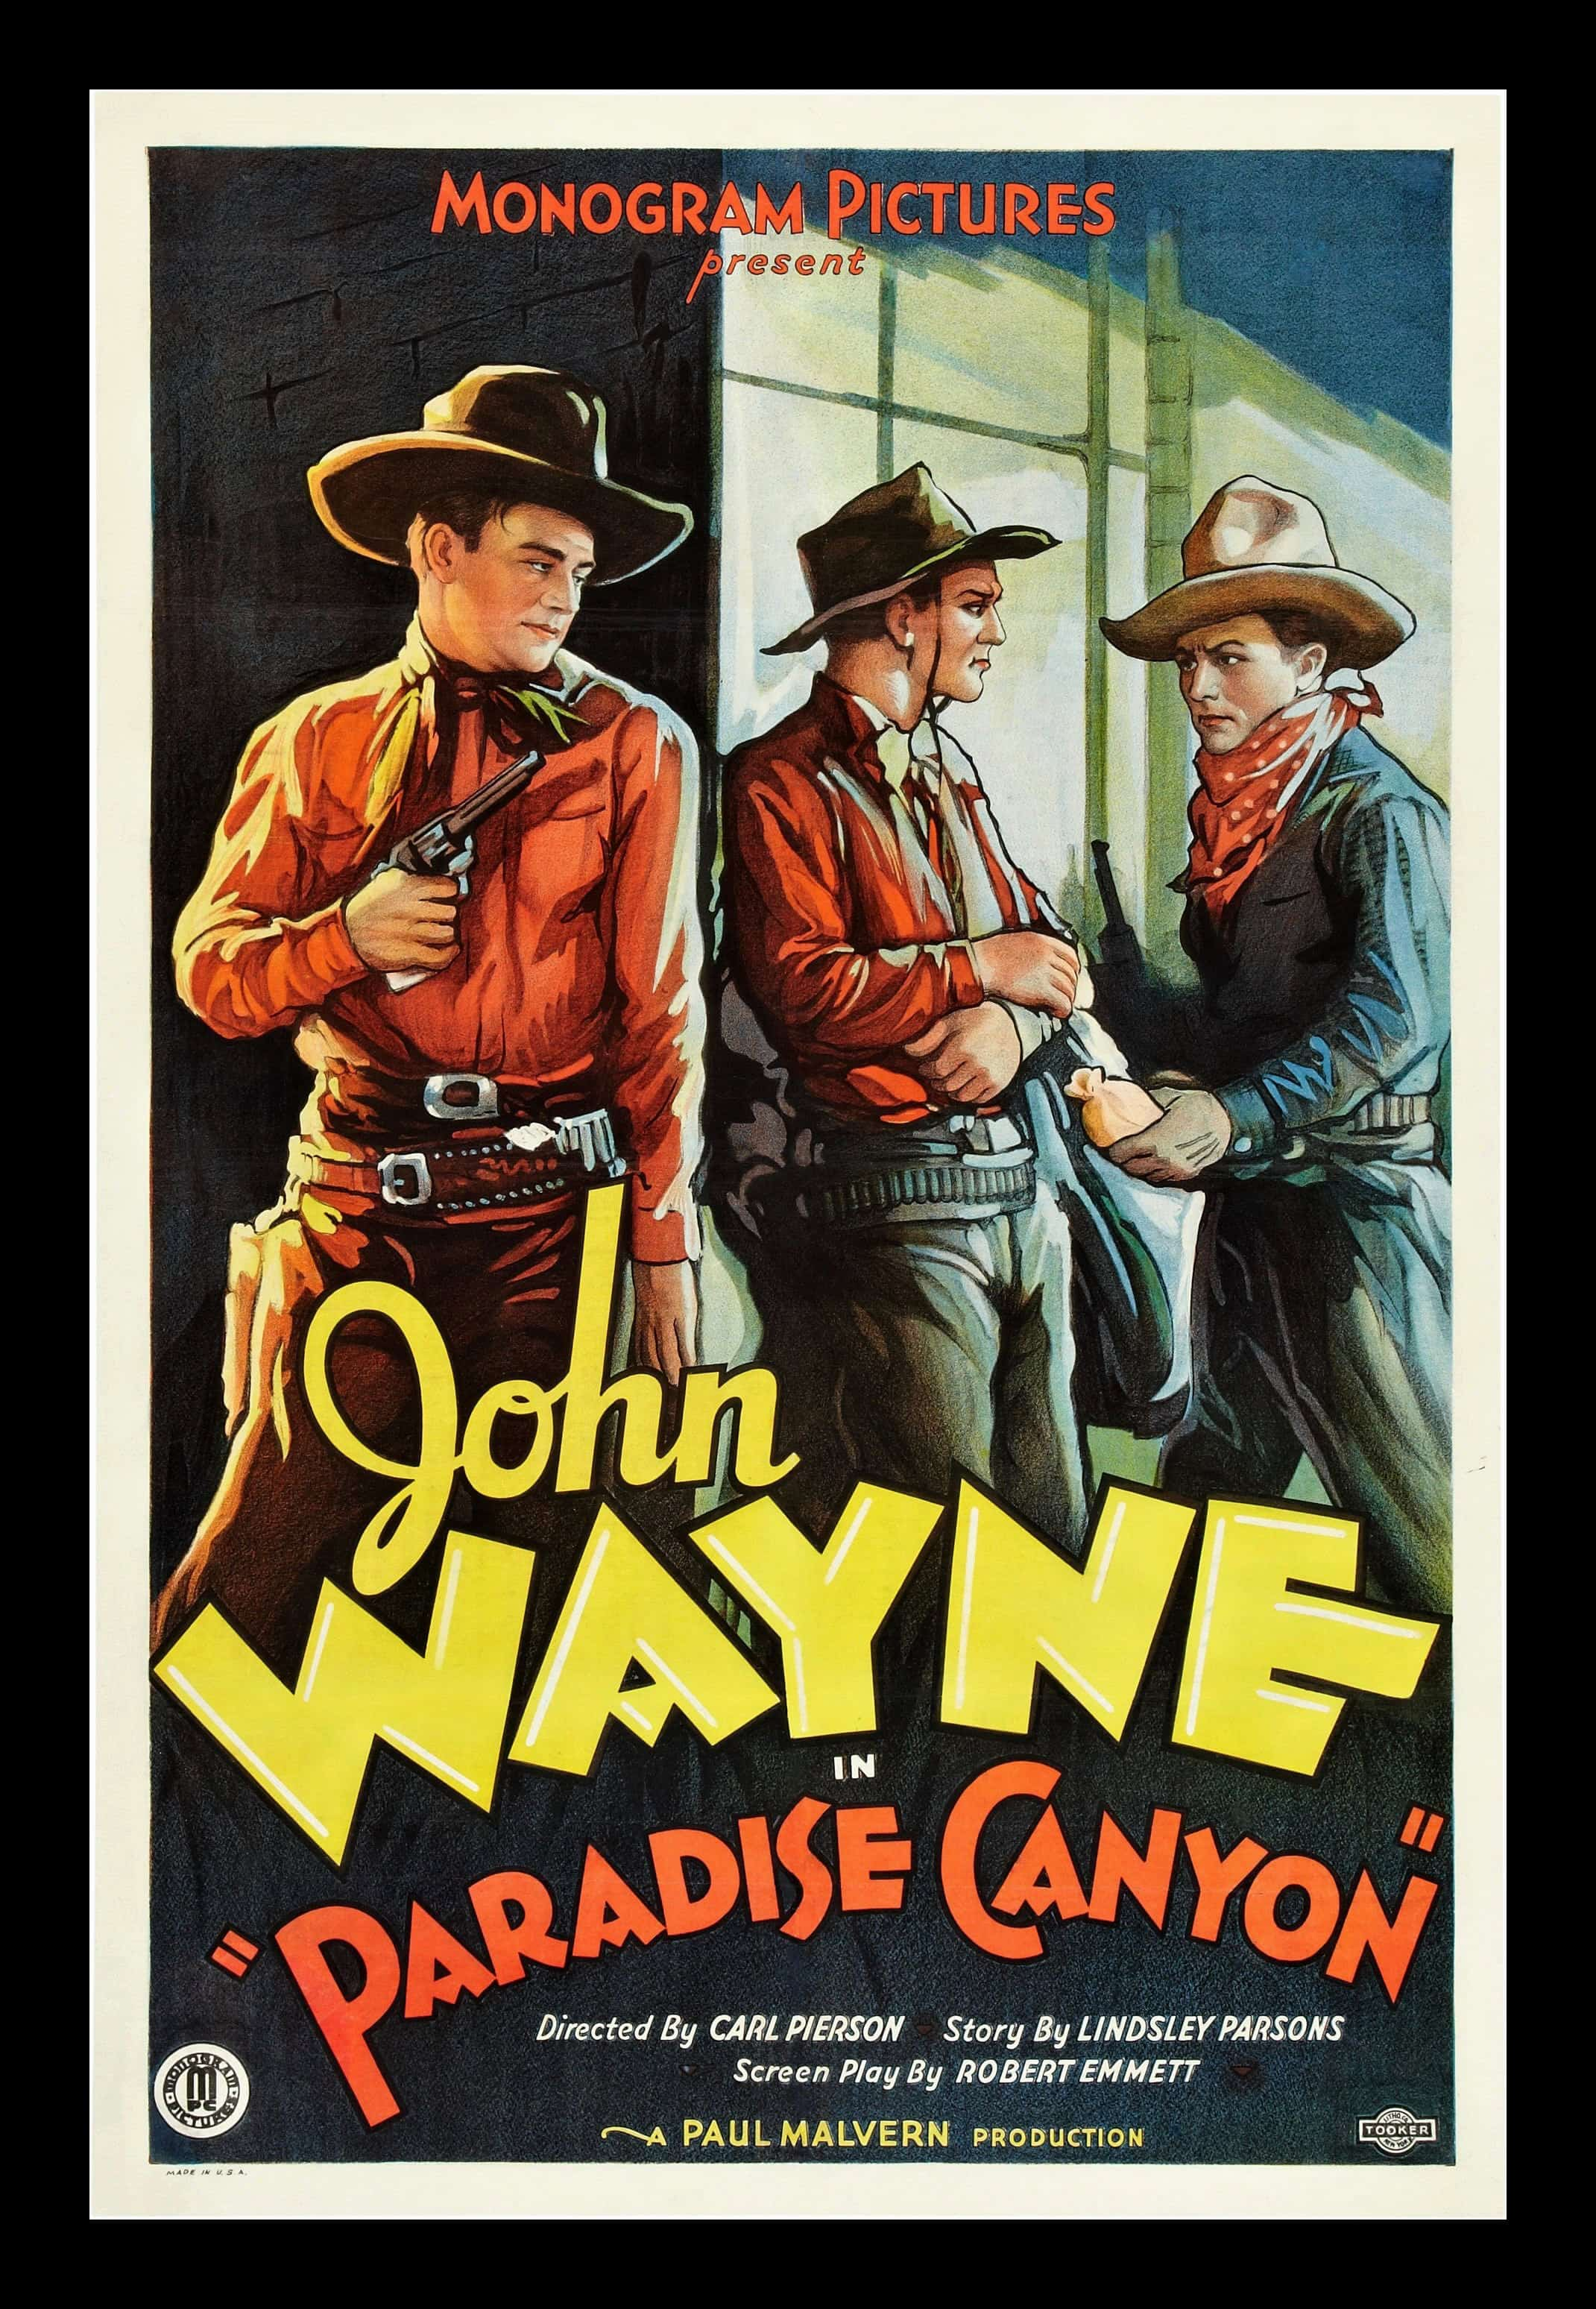 Vintage movie poster clipart picture free download John Wayne Paradise Canyon, 1935 Original Movie Poster picture free download